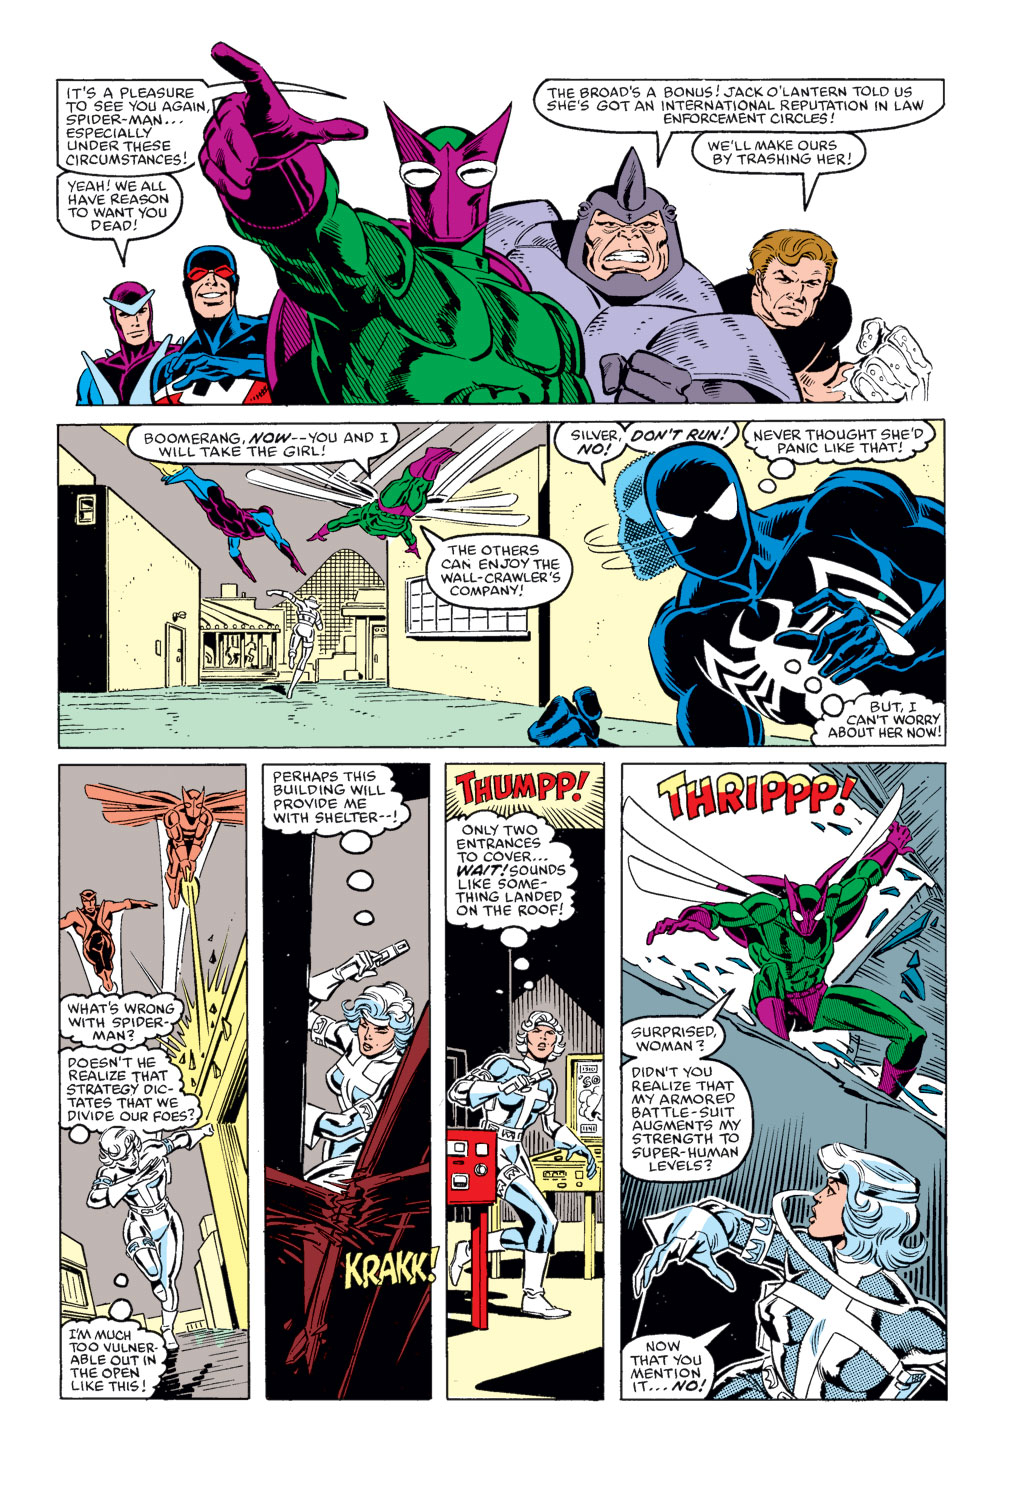 Spider-Man vs Silver Sable review